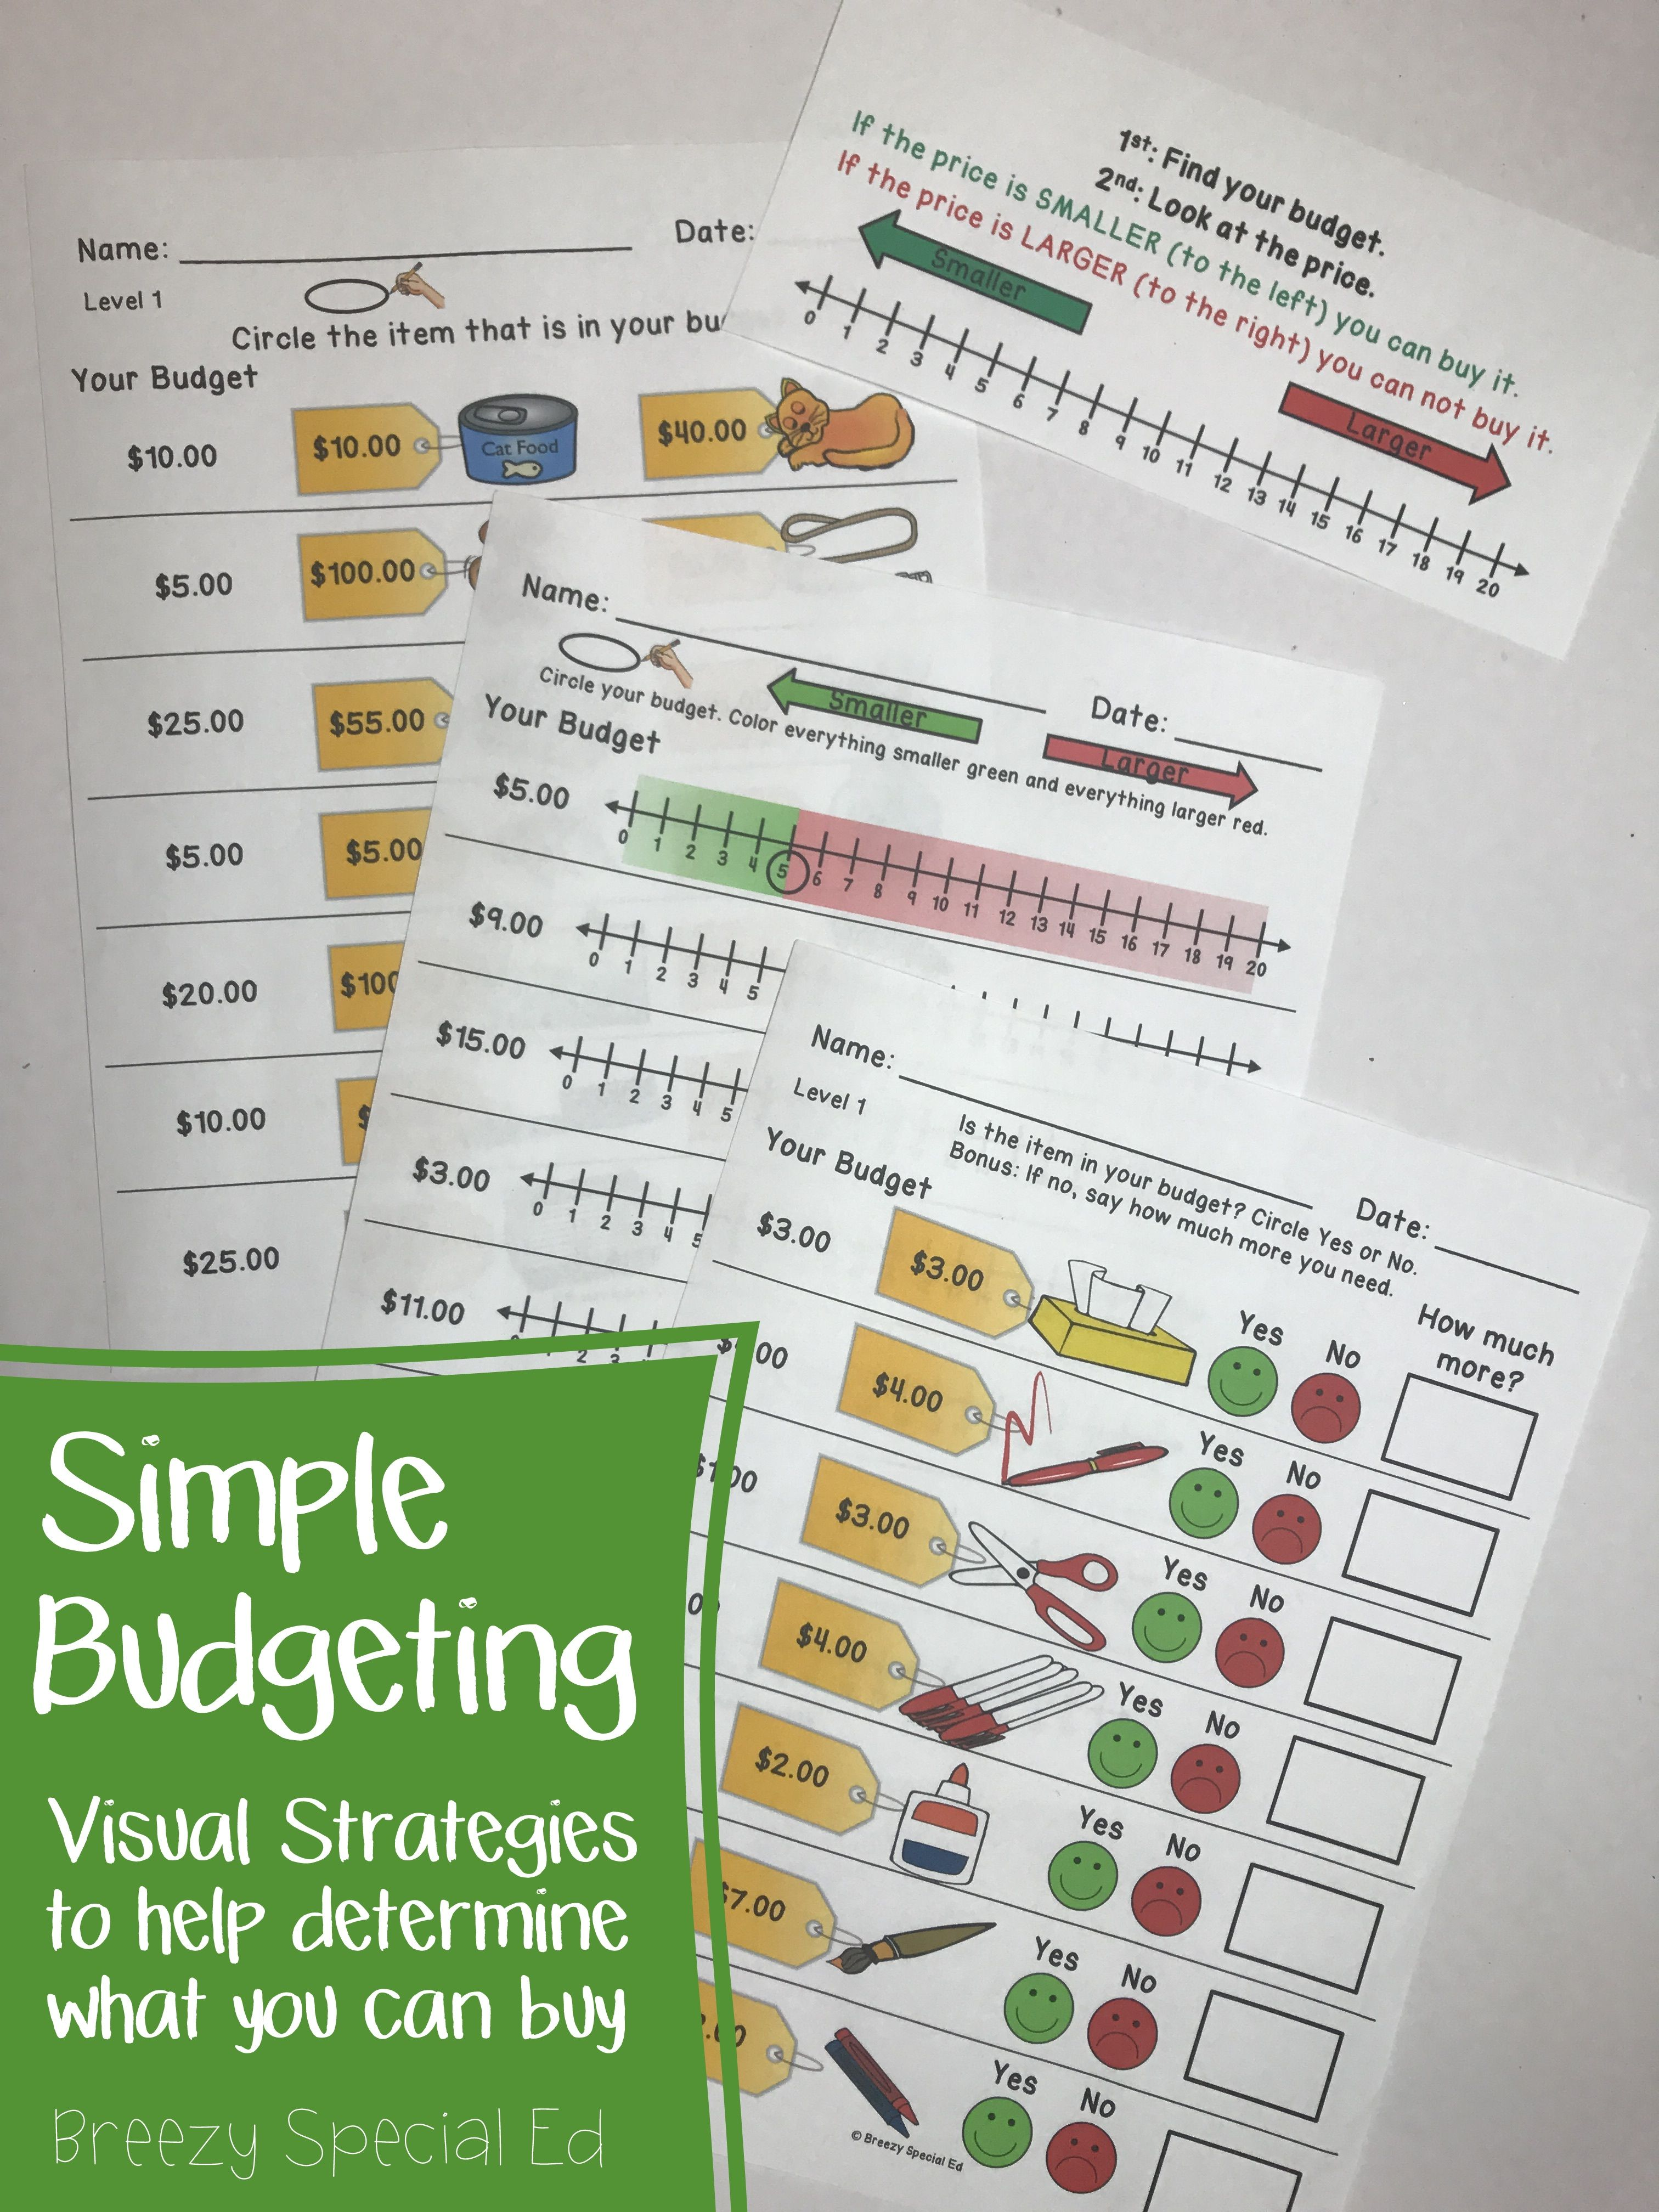 Budget Worksheets Do You Have Enough Money Life Skill Math For Special Ed Life Skills Life Skills Special Education Special Education [ 4032 x 3024 Pixel ]